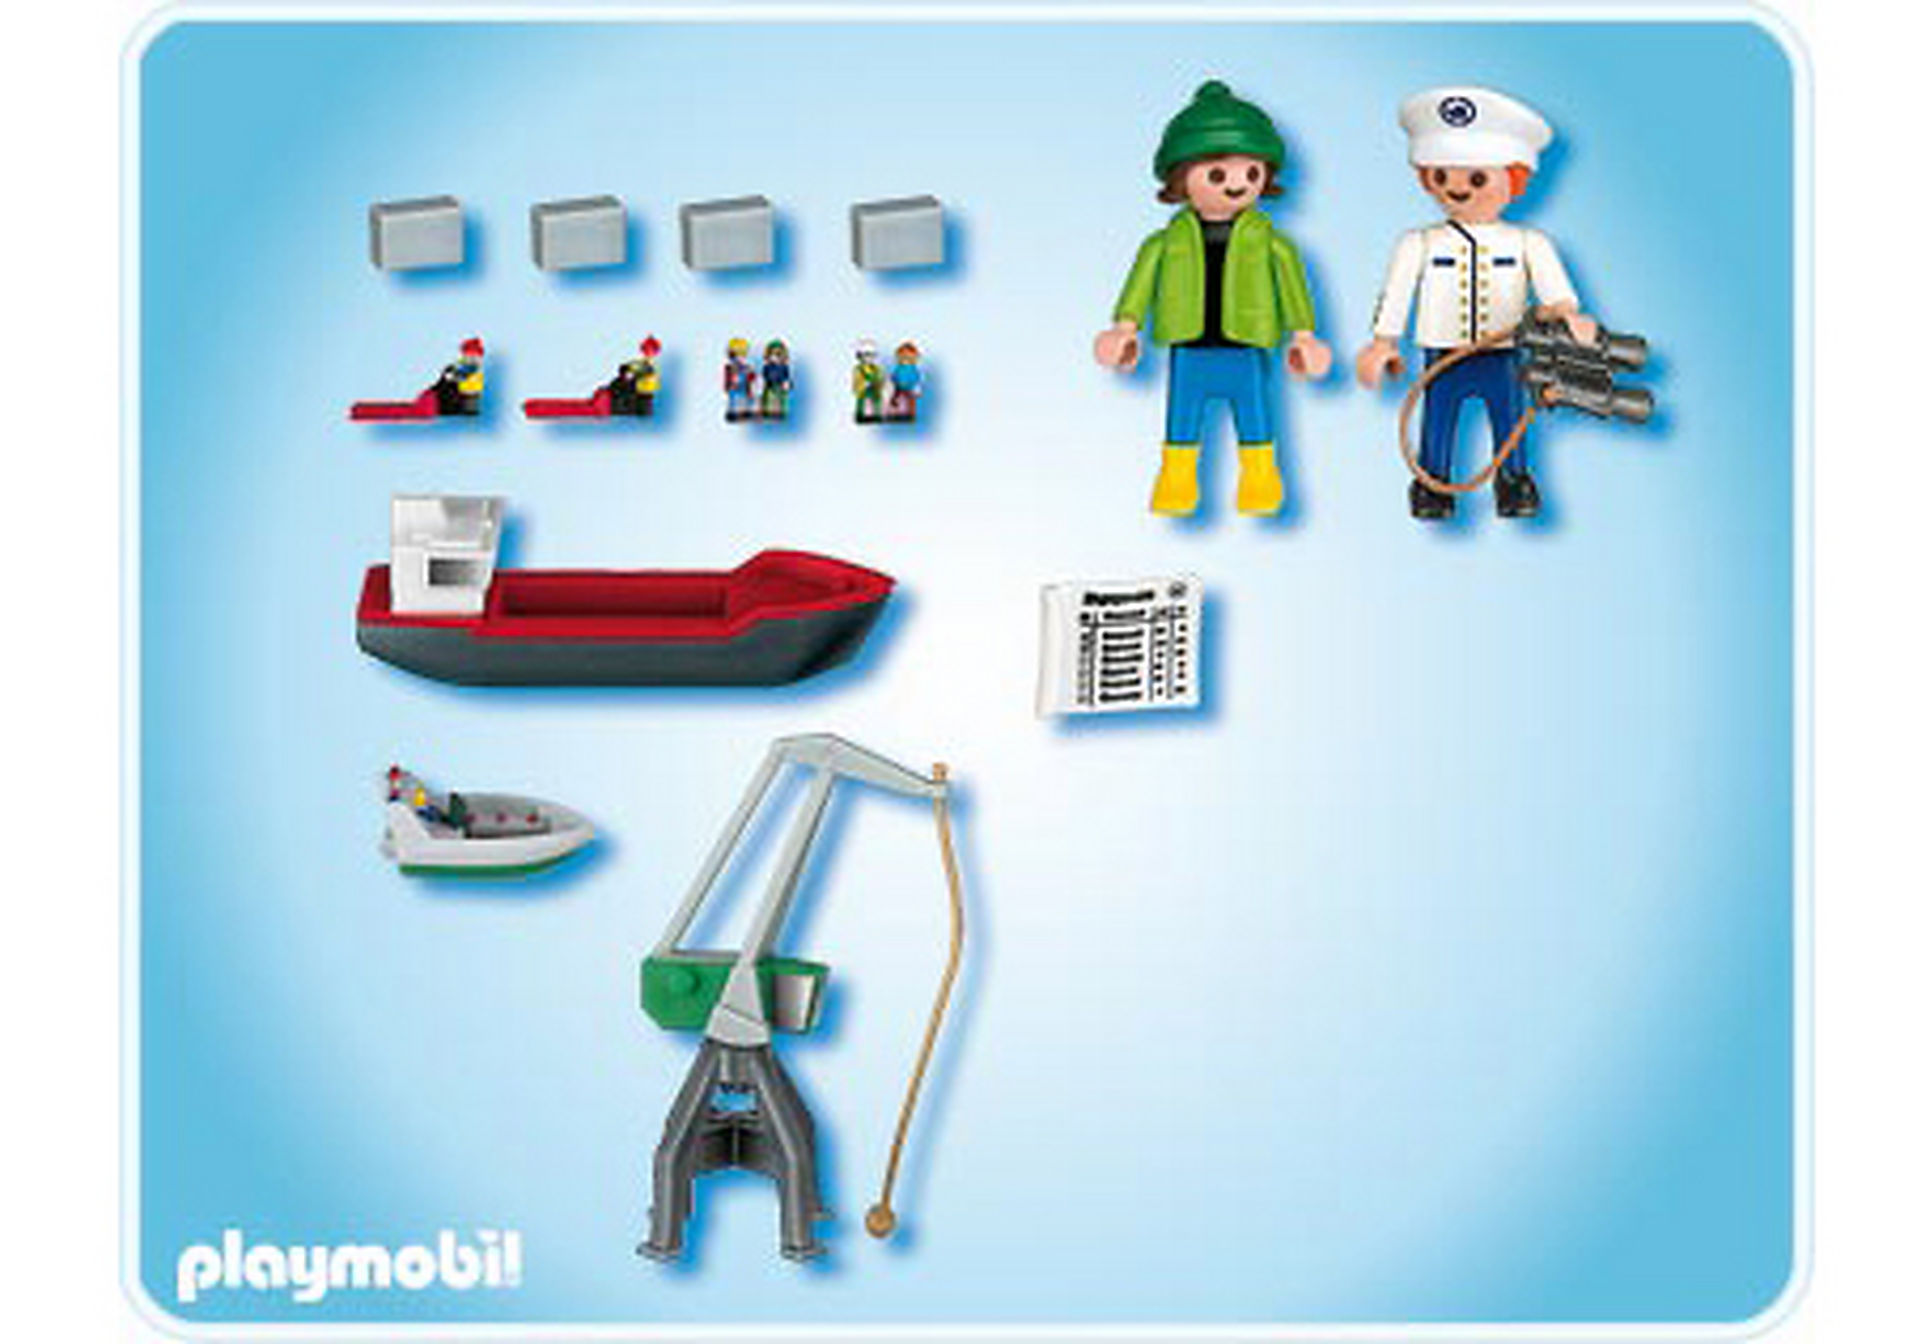 4337-A Micro PLAYMOBIL Port zoom image2